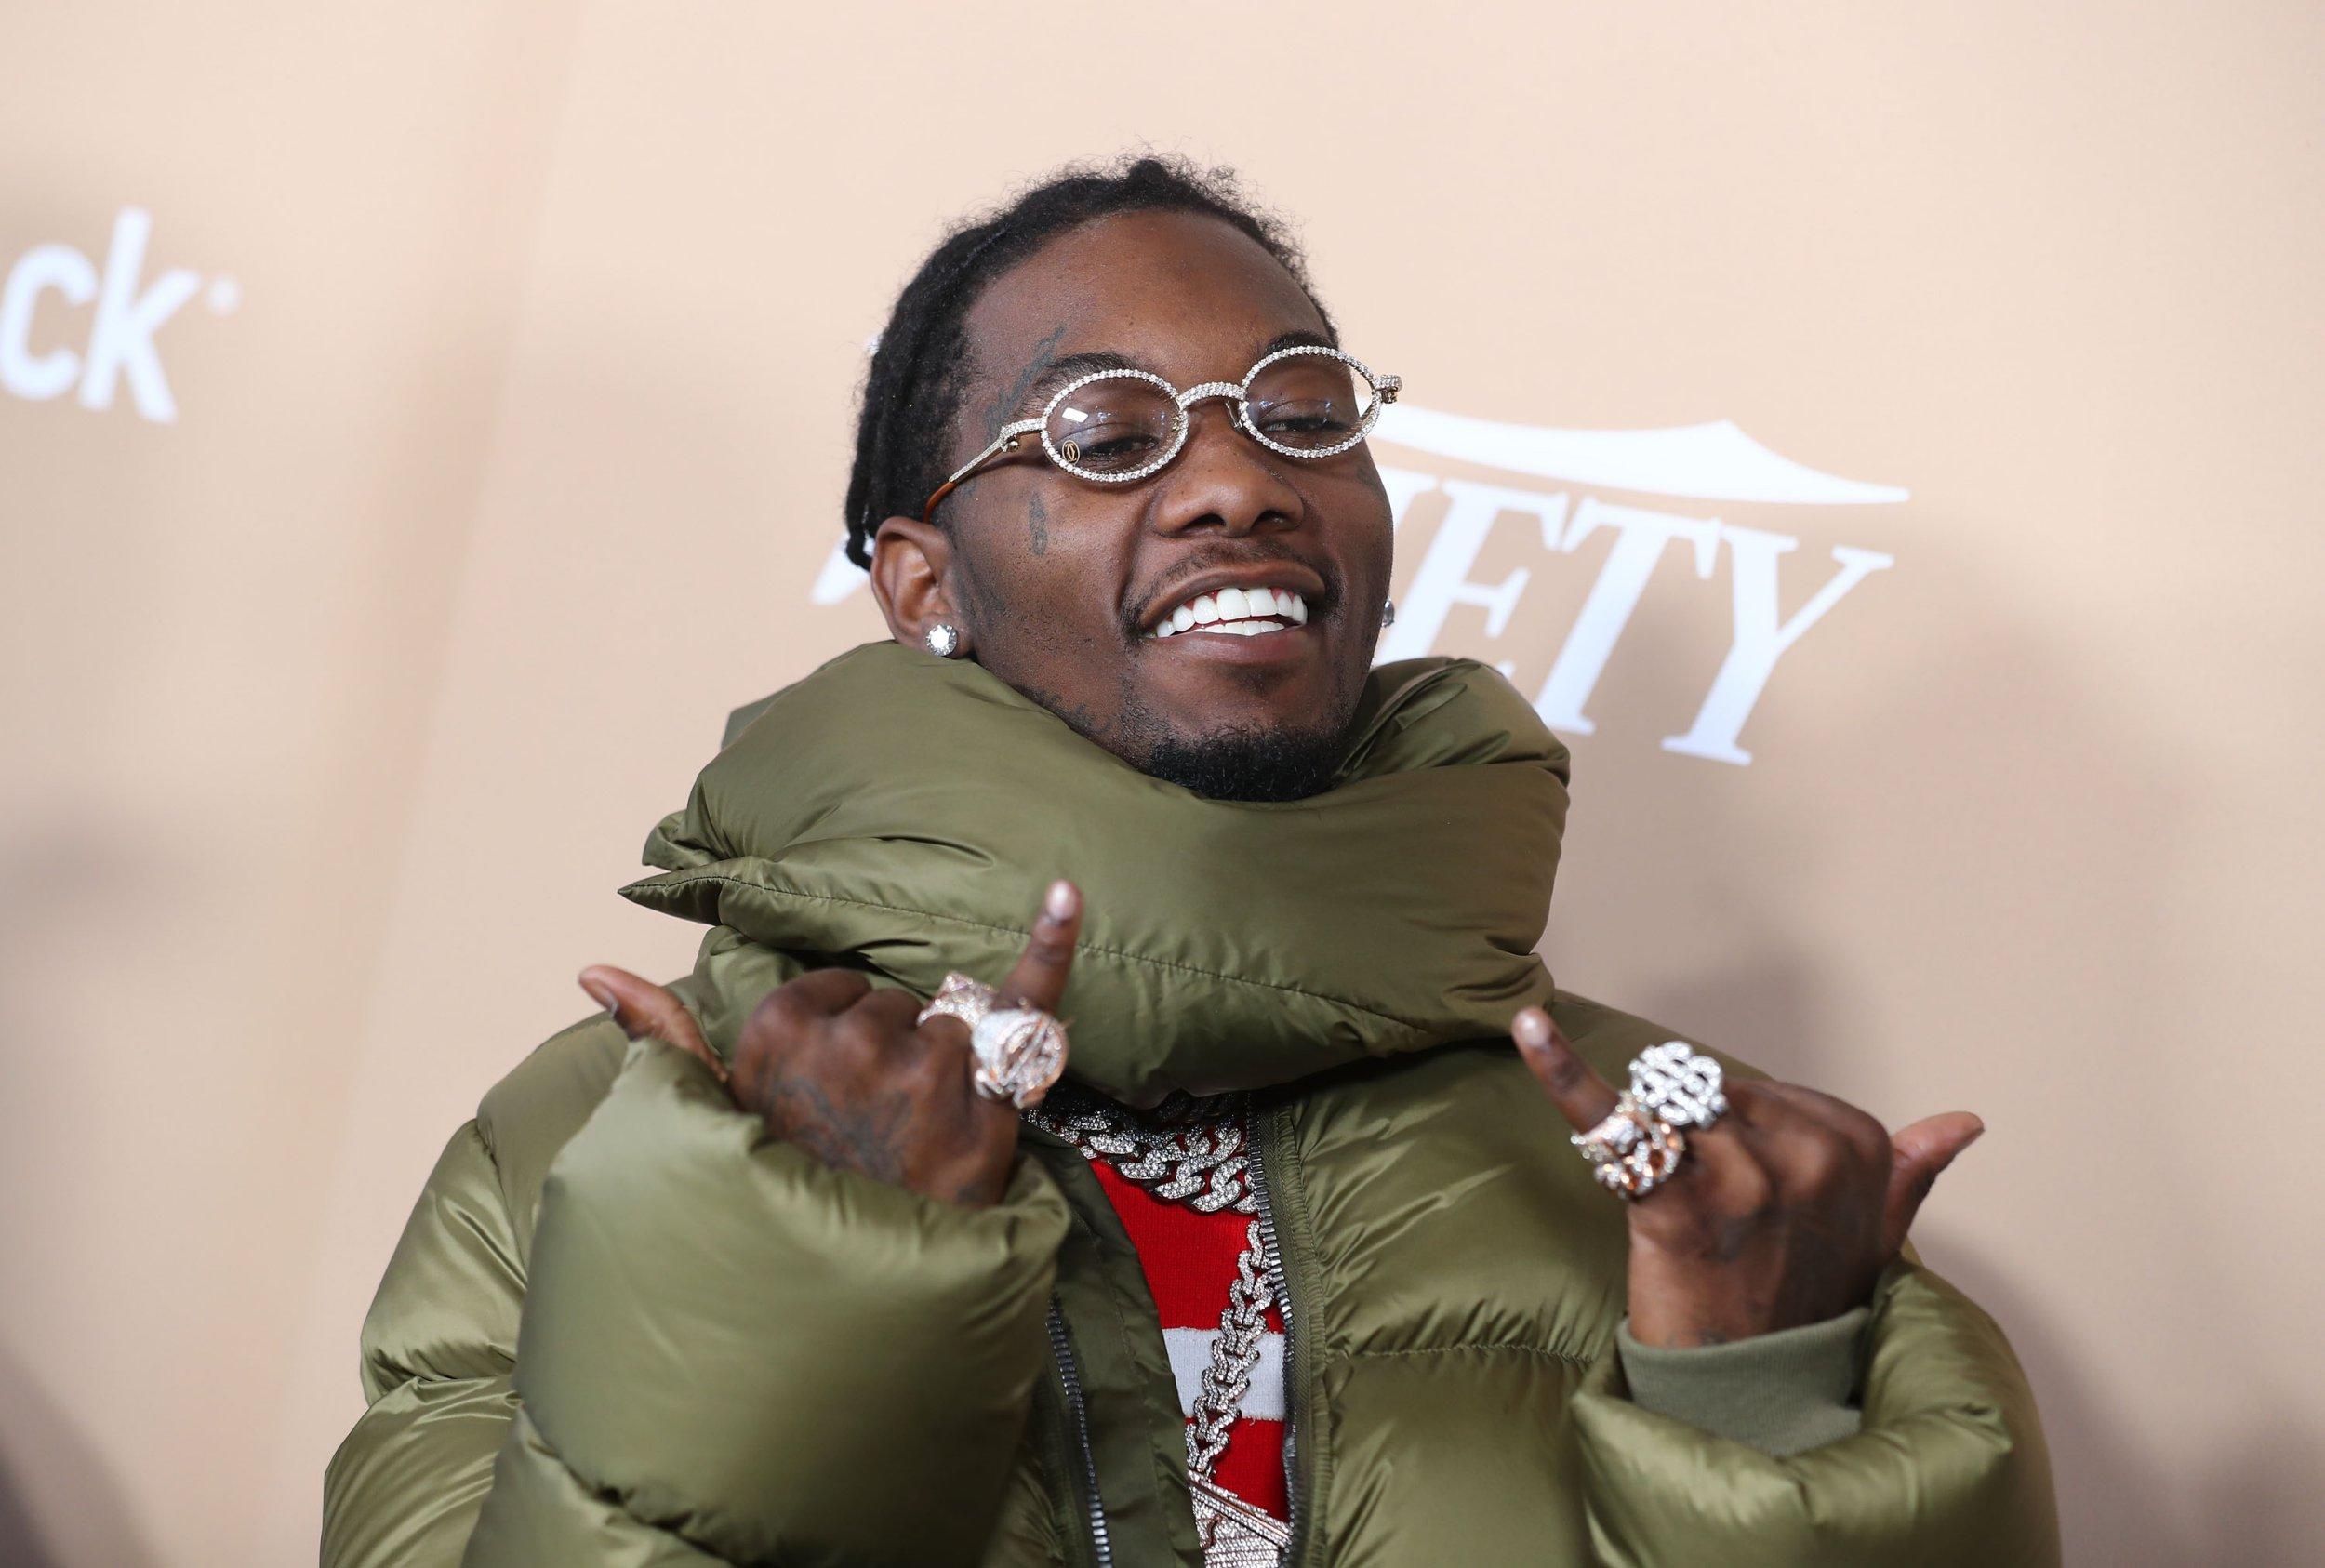 Mandatory Credit: Photo by John Salangsang/Variety/REX/Shutterstock (10011073aq) Offset attends the Second Annual Variety Hitmakers Brunch at The Sunset Tower Hotel on December 1, 2018 in West Hollywood. Variety Hitmakers Brunch, Arrivals, Los Angeles, USA - 01 Dec 2018